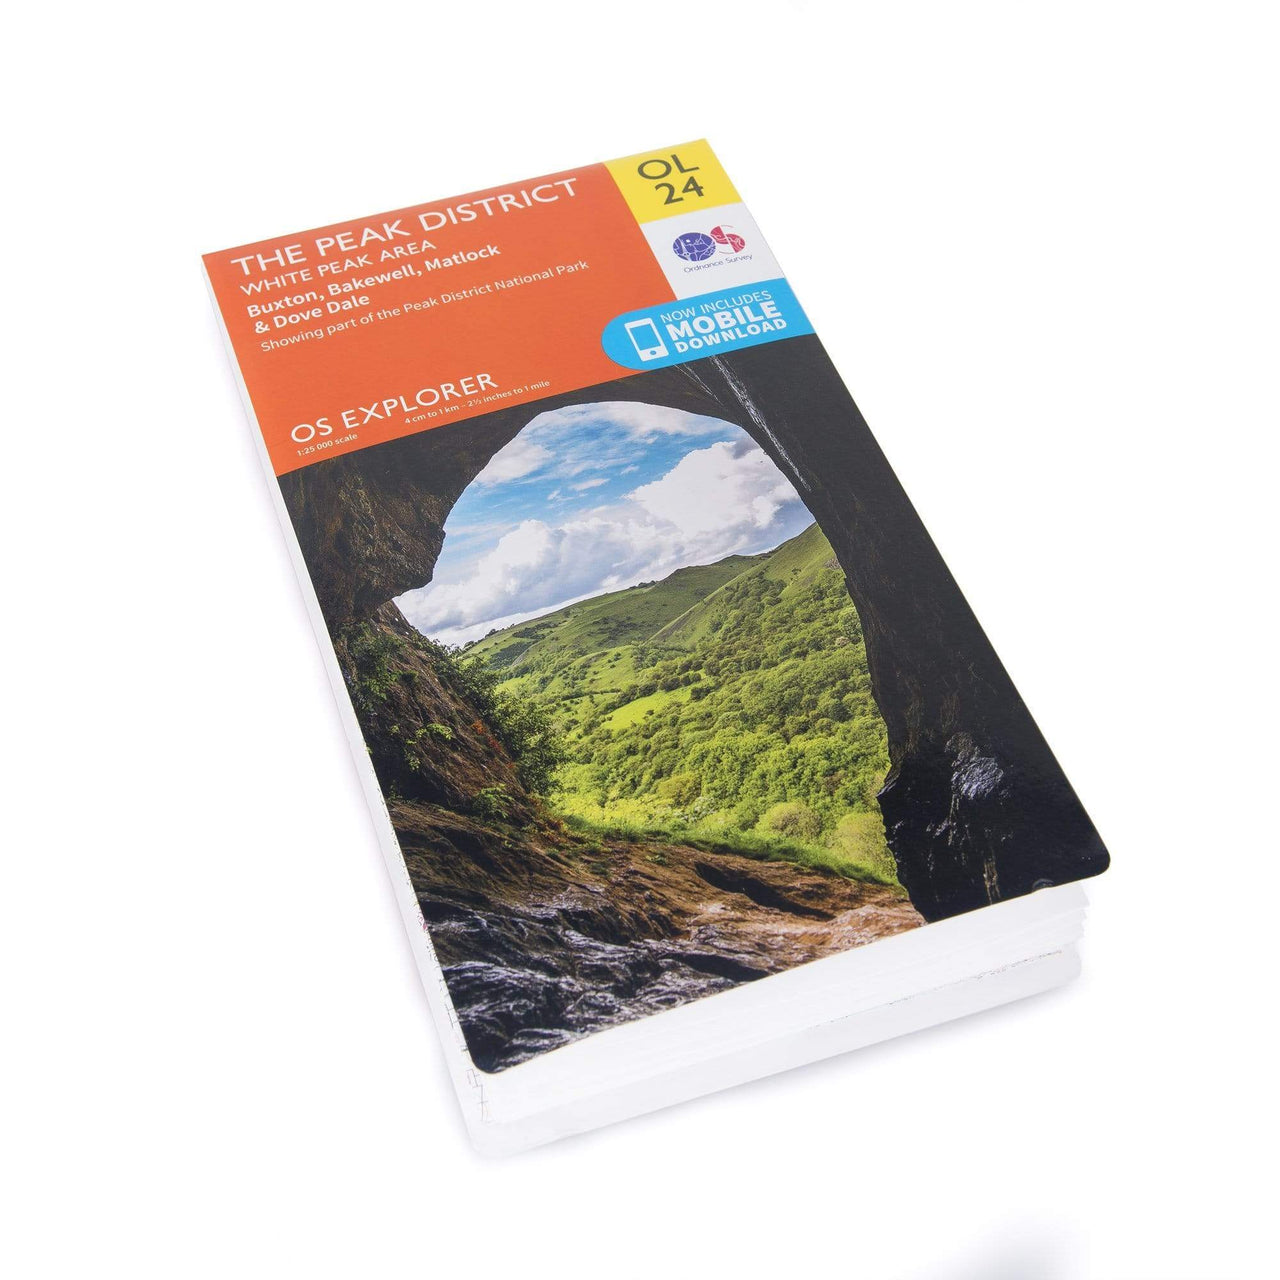 OS Explorer Maps: Peak District - White Peak